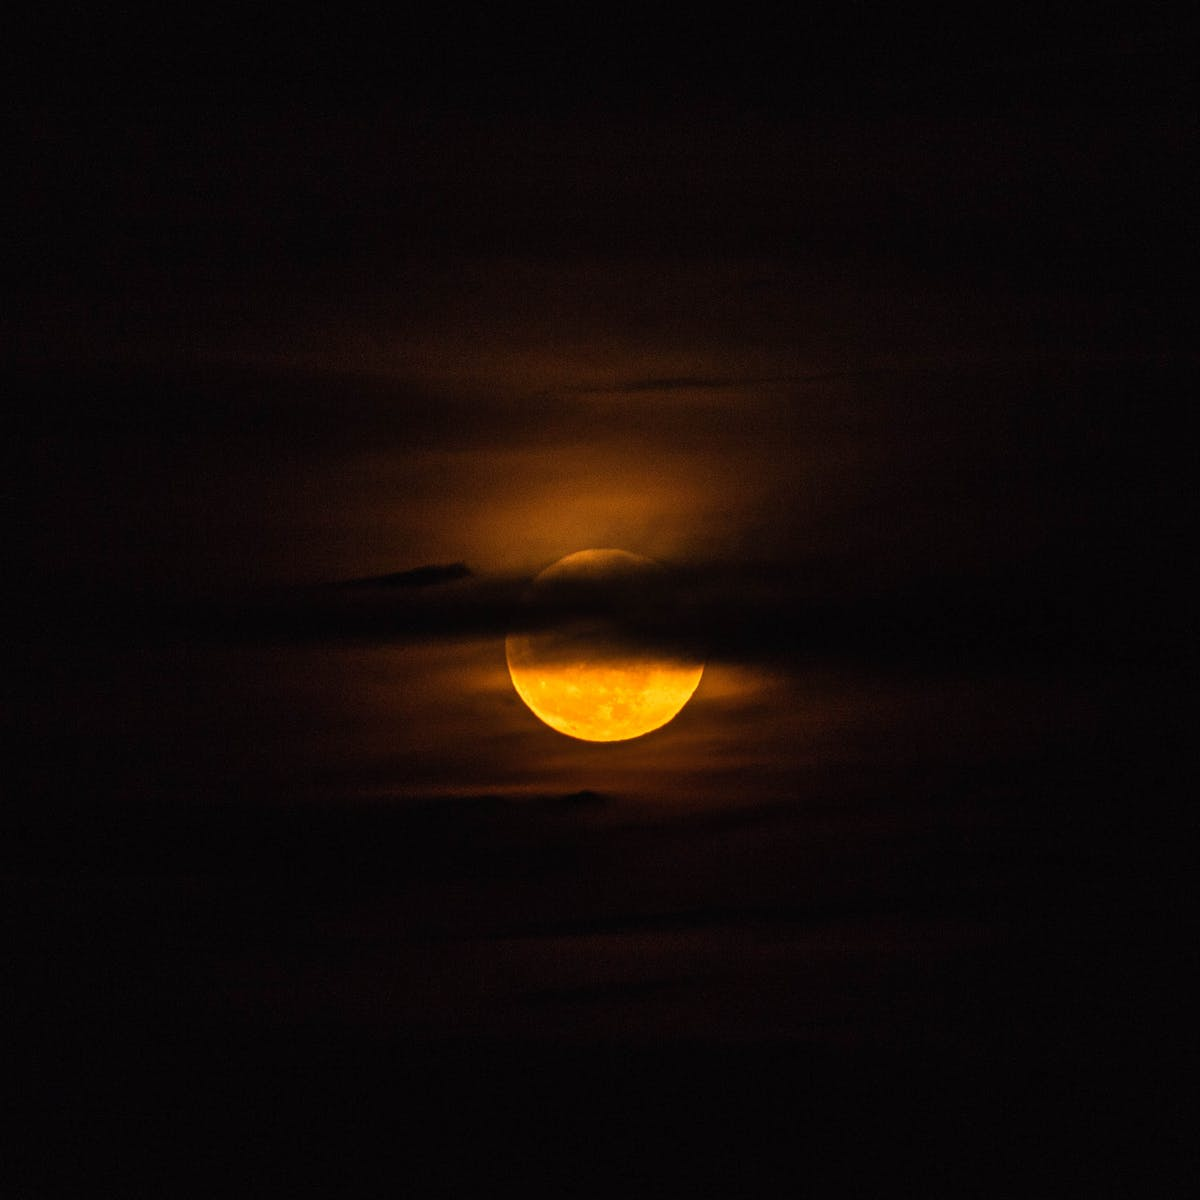 When Is the Harvest Moon? 2018 Moon Comes 2 Days After September Equinox